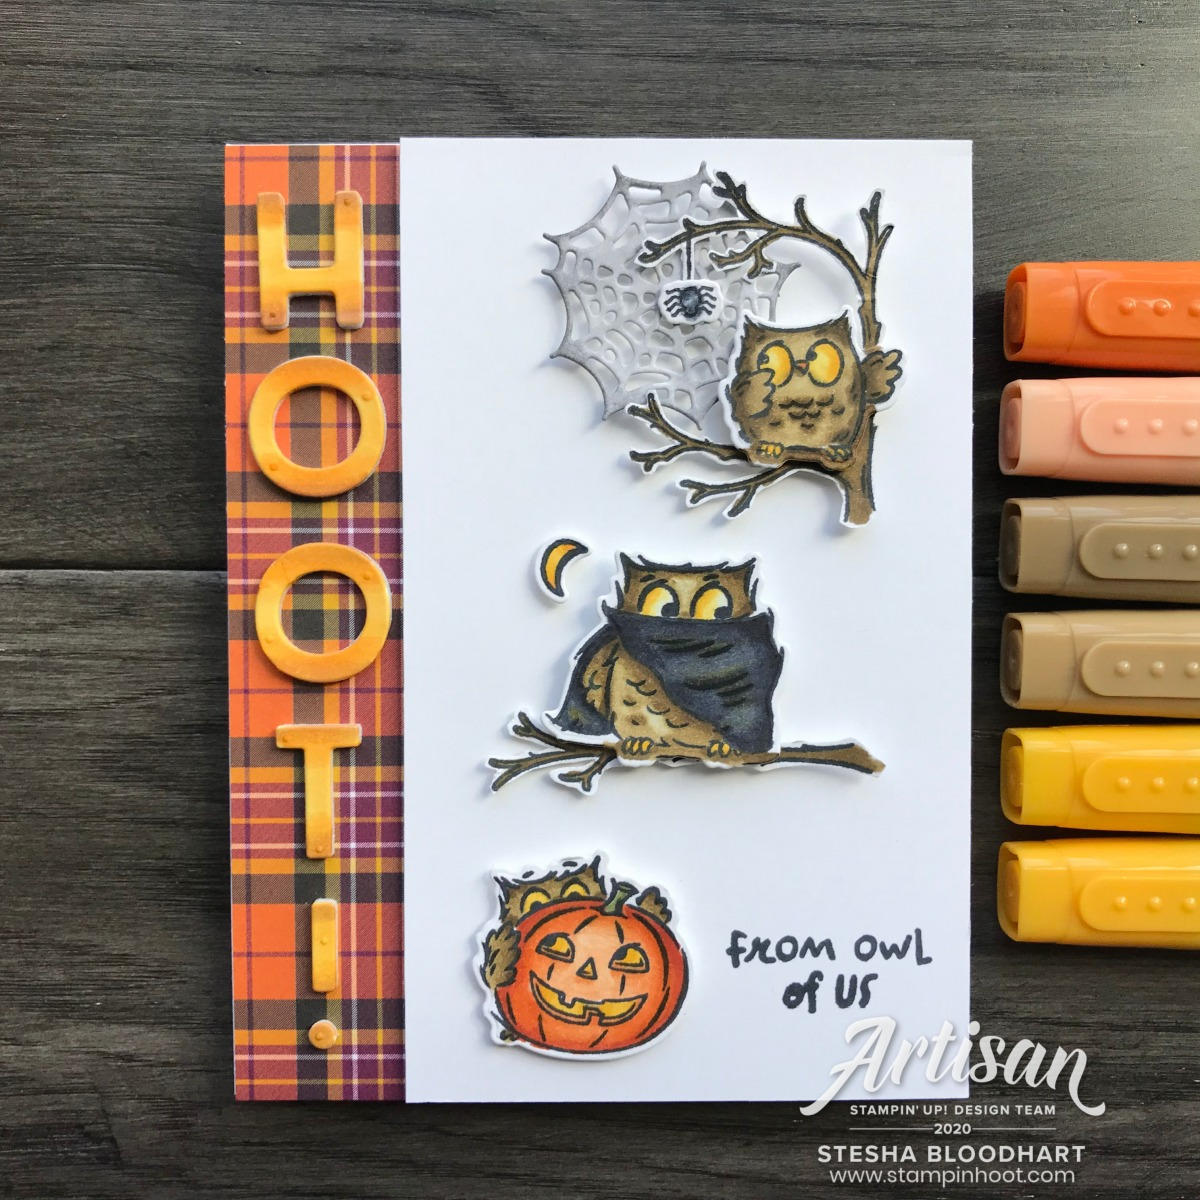 Have a Hoot Bundle from Stampin' Up! Card created by Stesha Bloodhart, Stampin' Hoot!